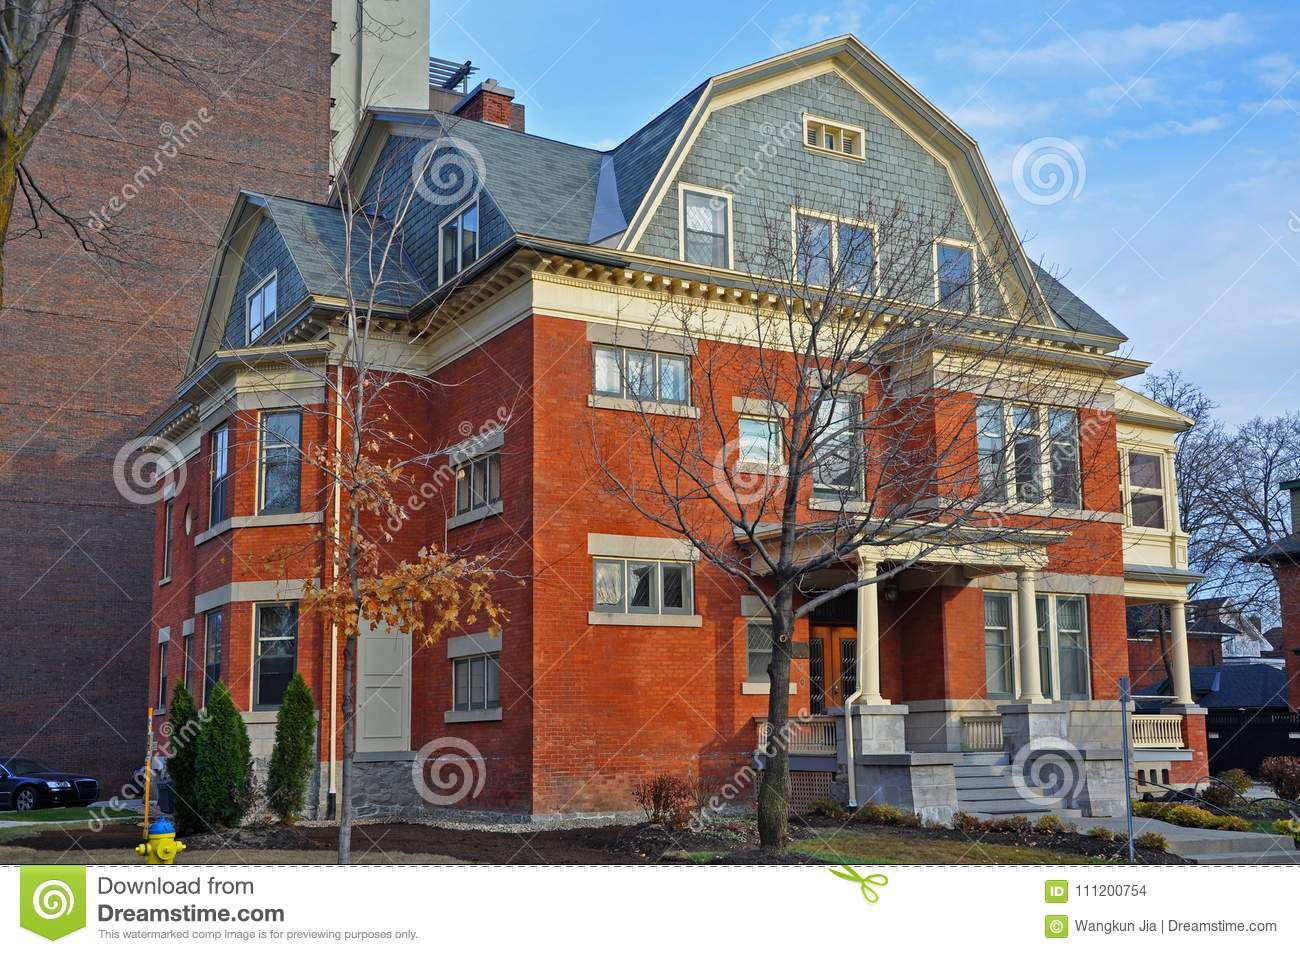 House Builders Ottawa Historic Building In Ottawa Canada Stock Photo Image Of Empire